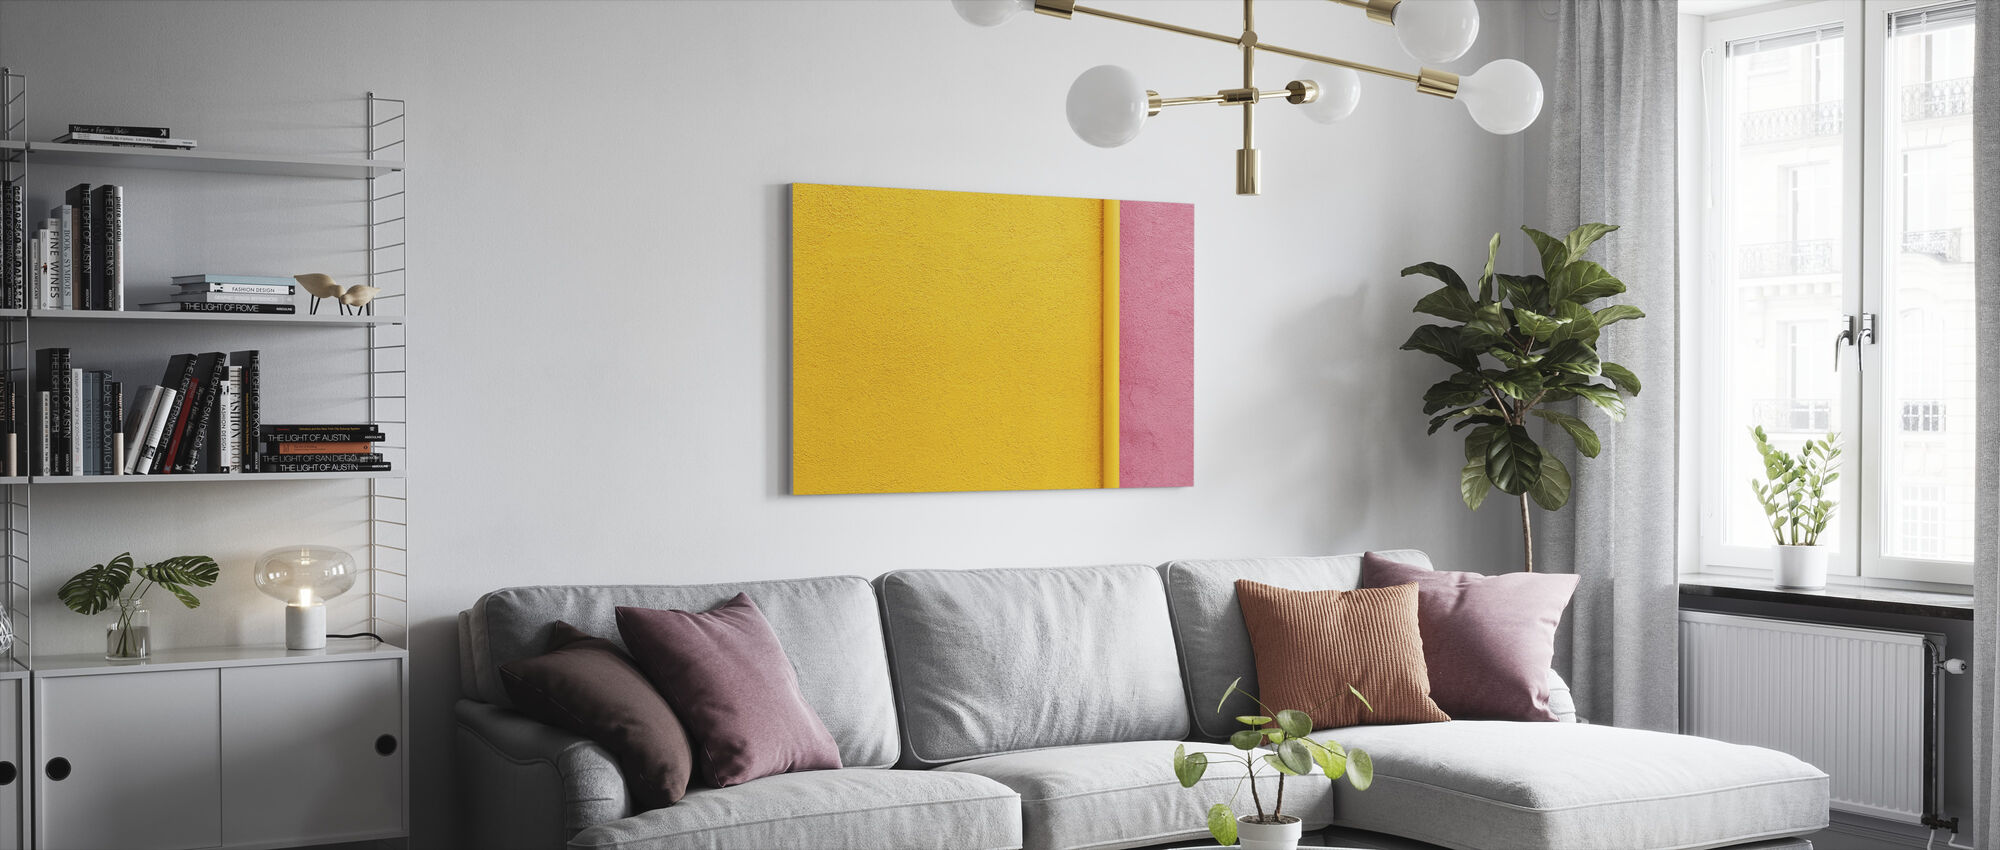 Yellow and Pink Wall with Pipe - Canvas print - Living Room